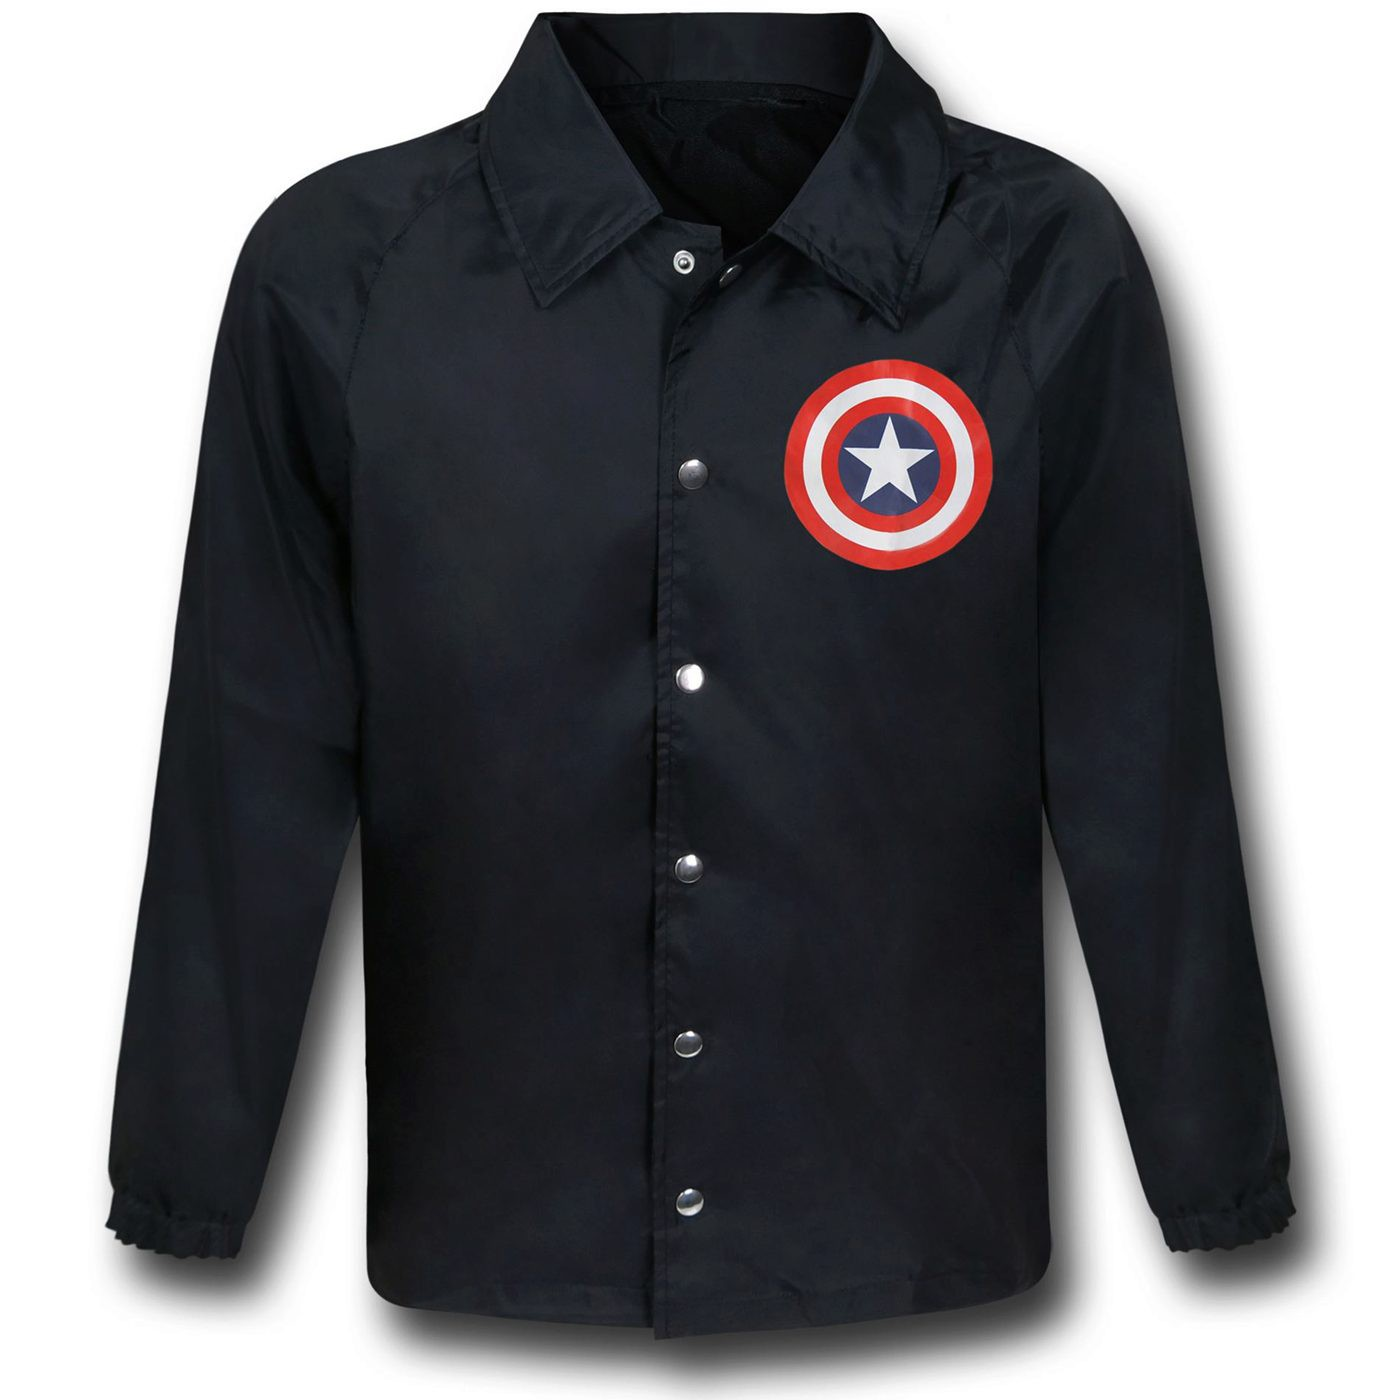 Captain America Shield Black Windbreaker